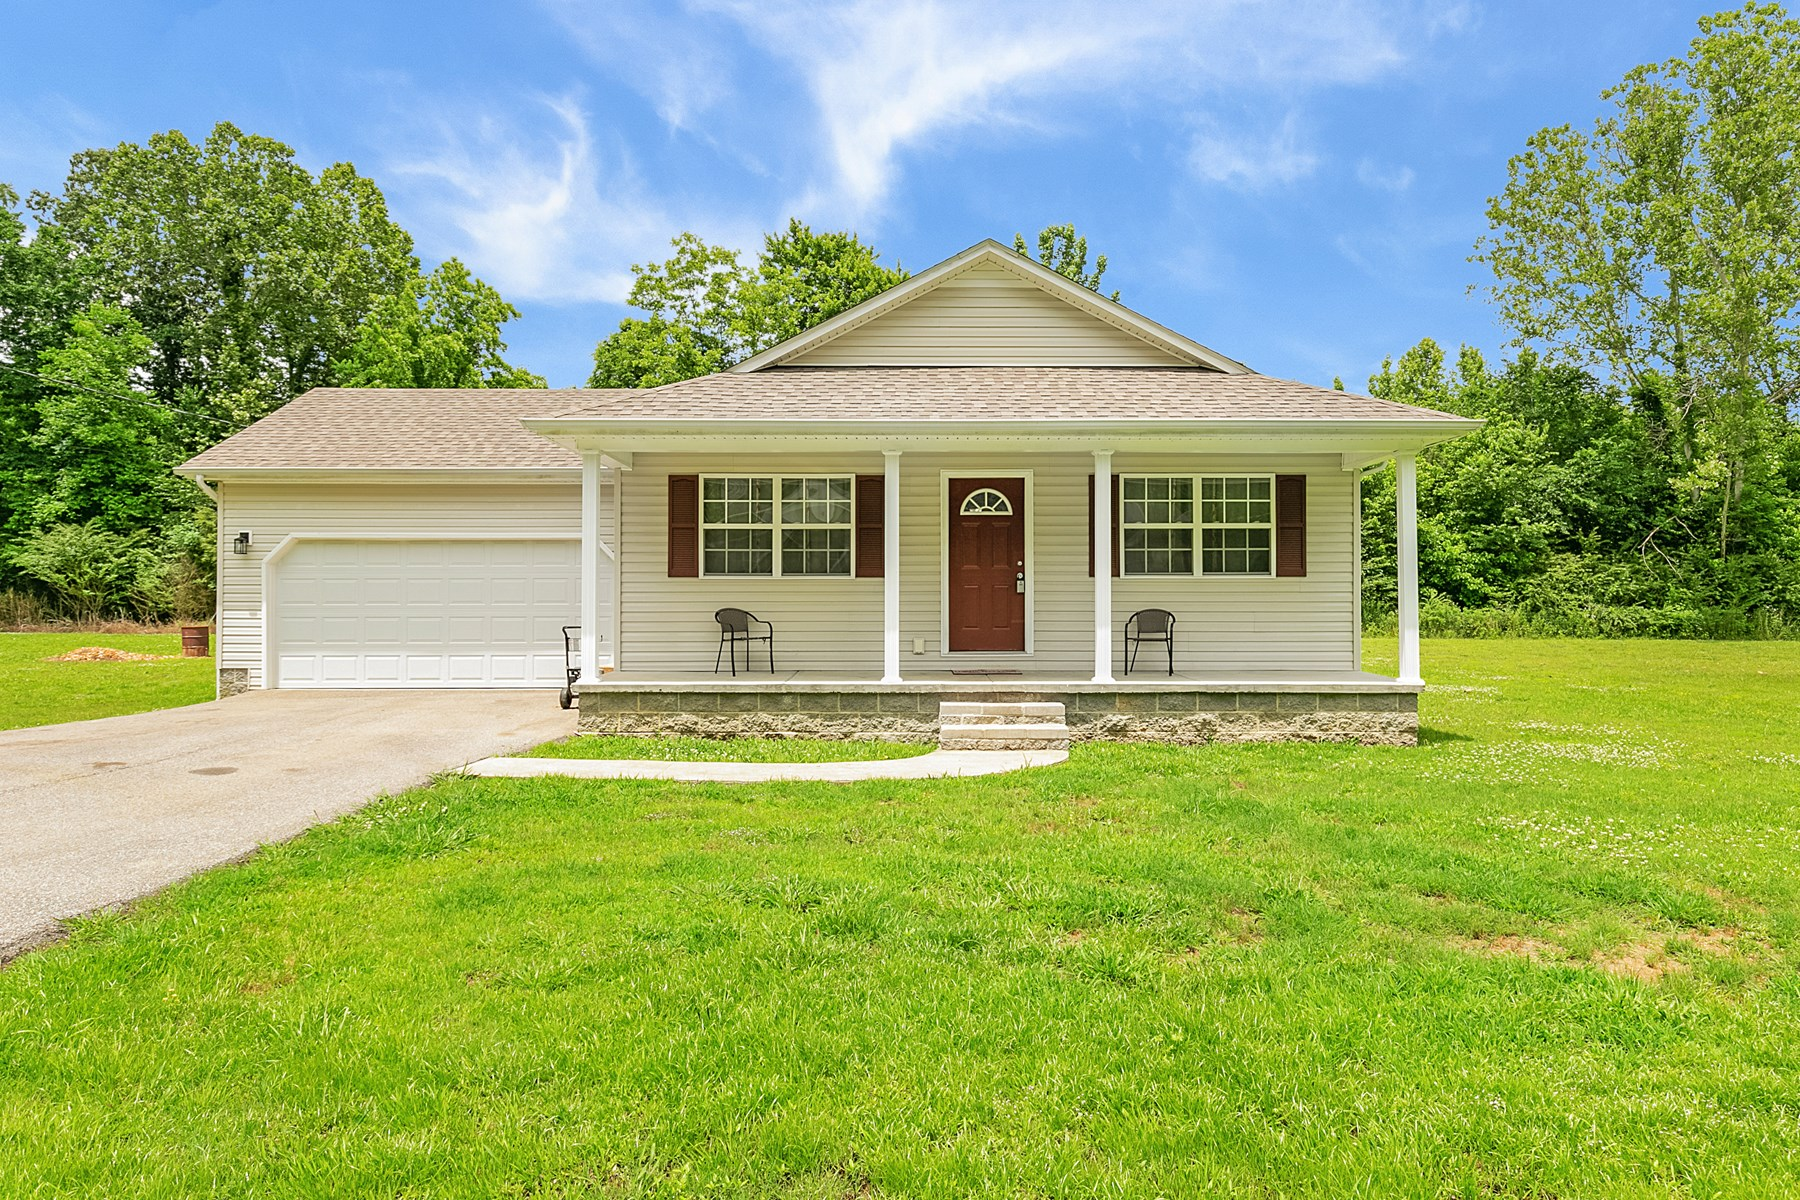 3 BR / 2BA Home for Sale in Paris, TN - Extra Lot Included